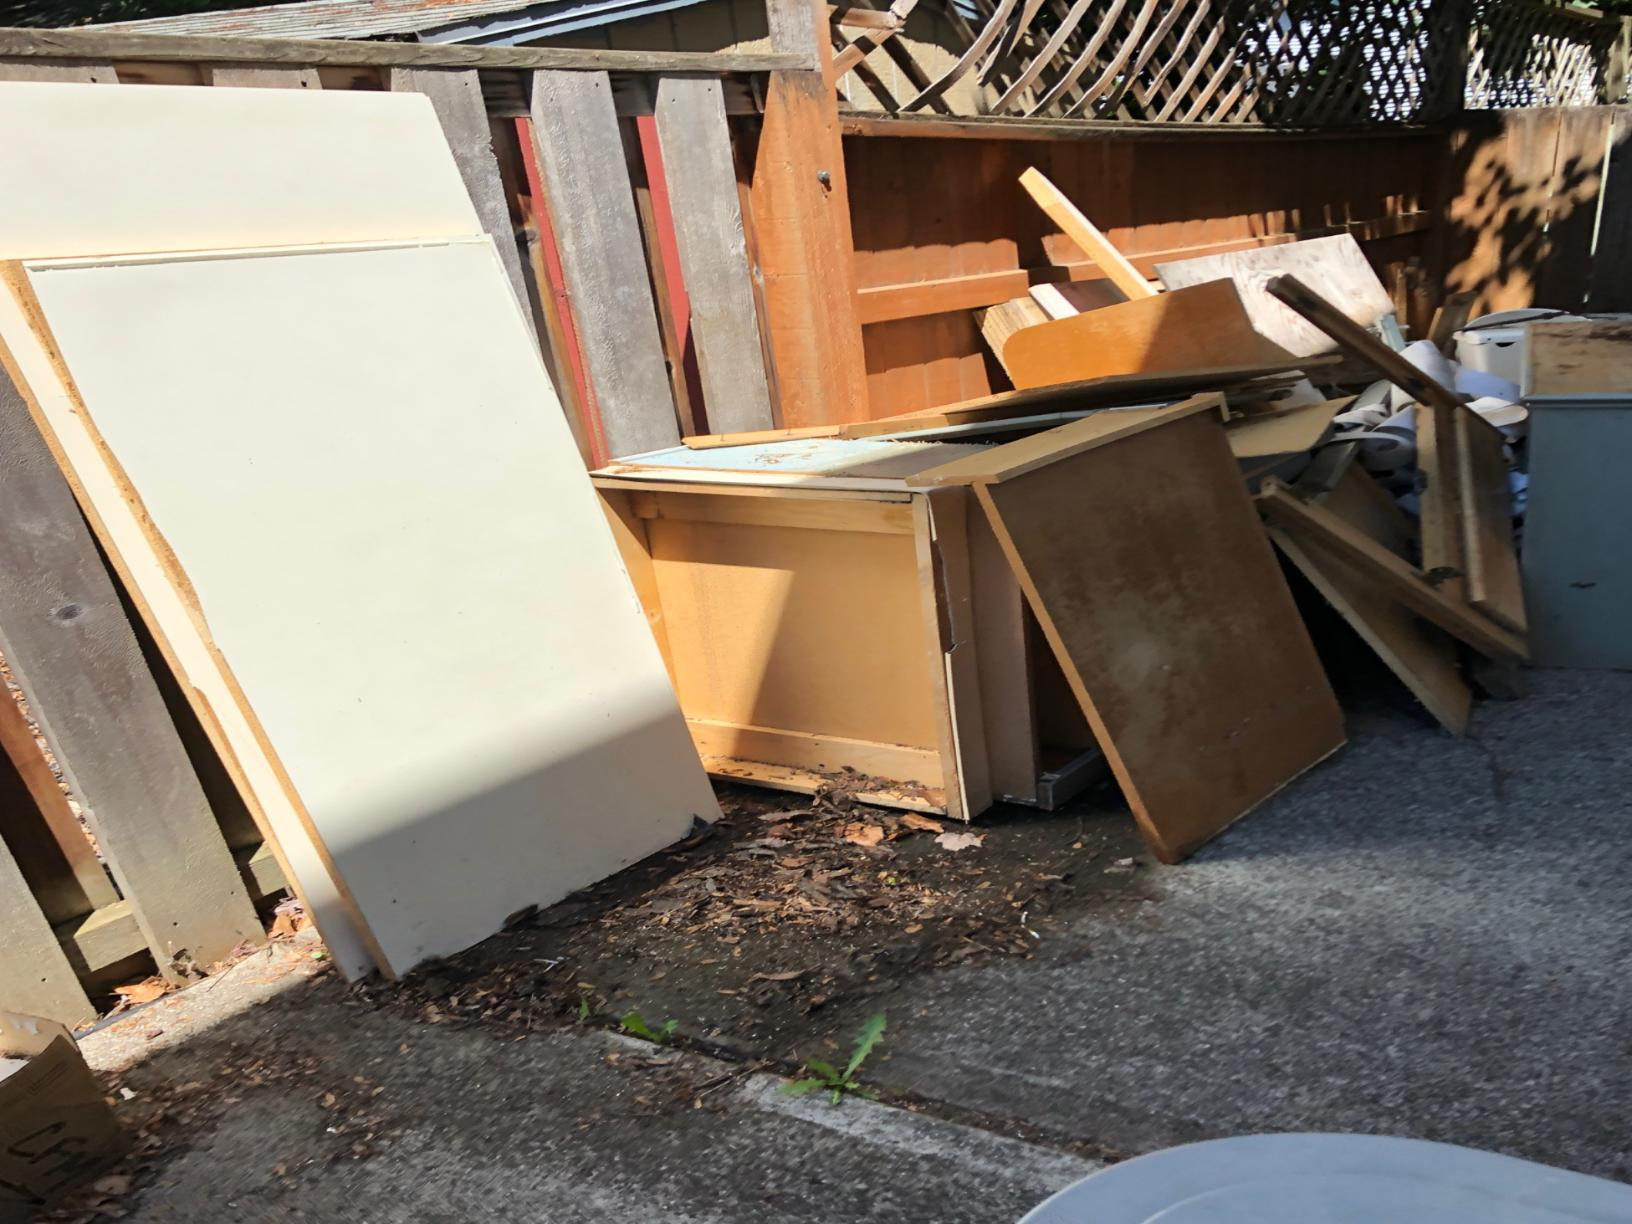 Troutdale, OR - Junk Removal - Before Photo